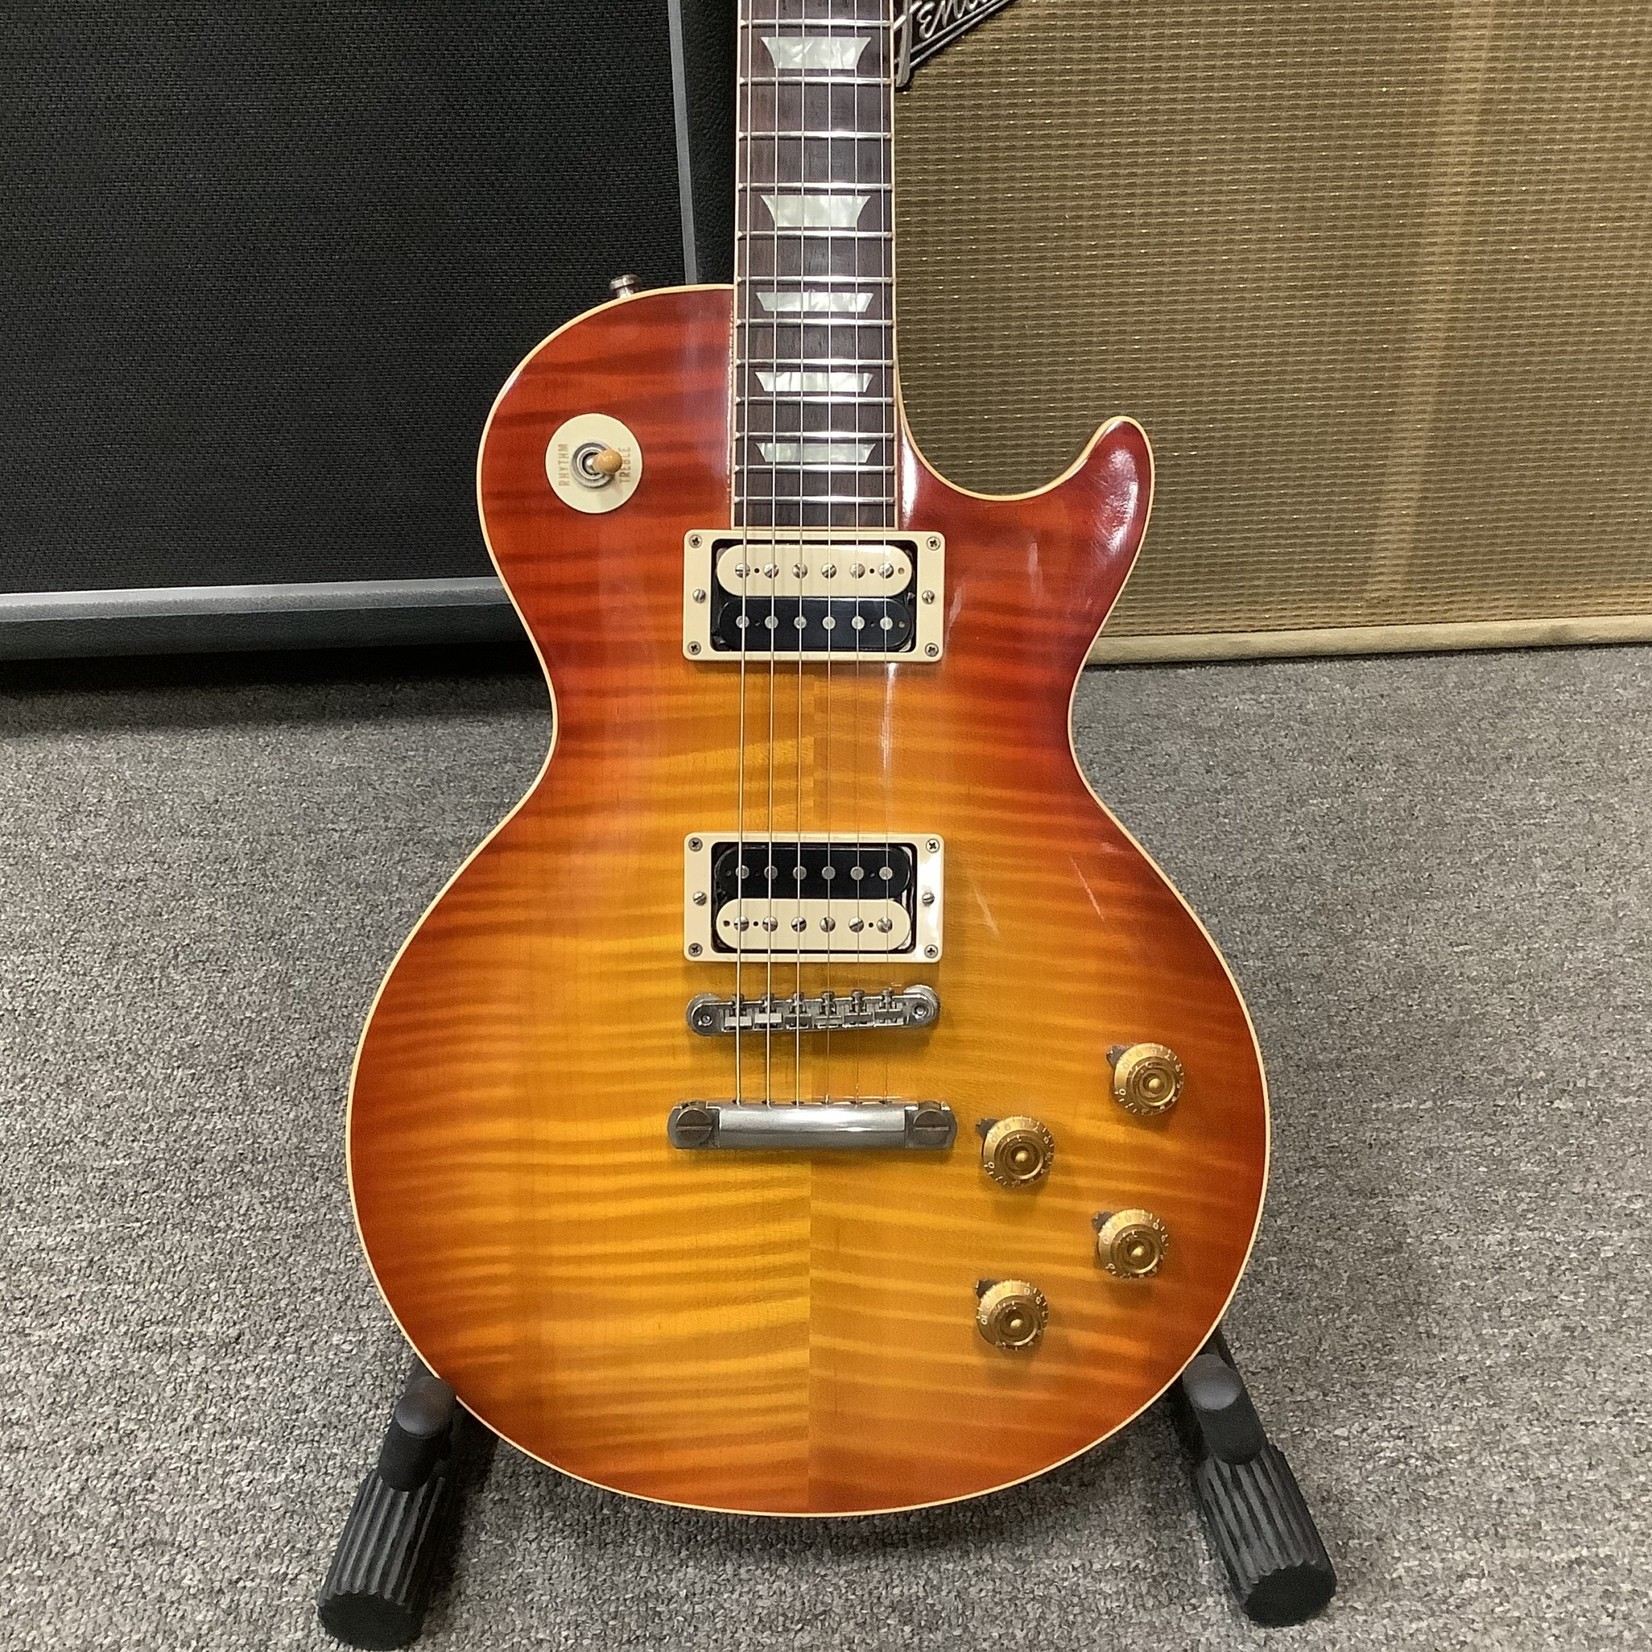 Gibson Gibson Les Paul 1959 Reissue Flame Top Zebras Pickups, Certificate, etc.